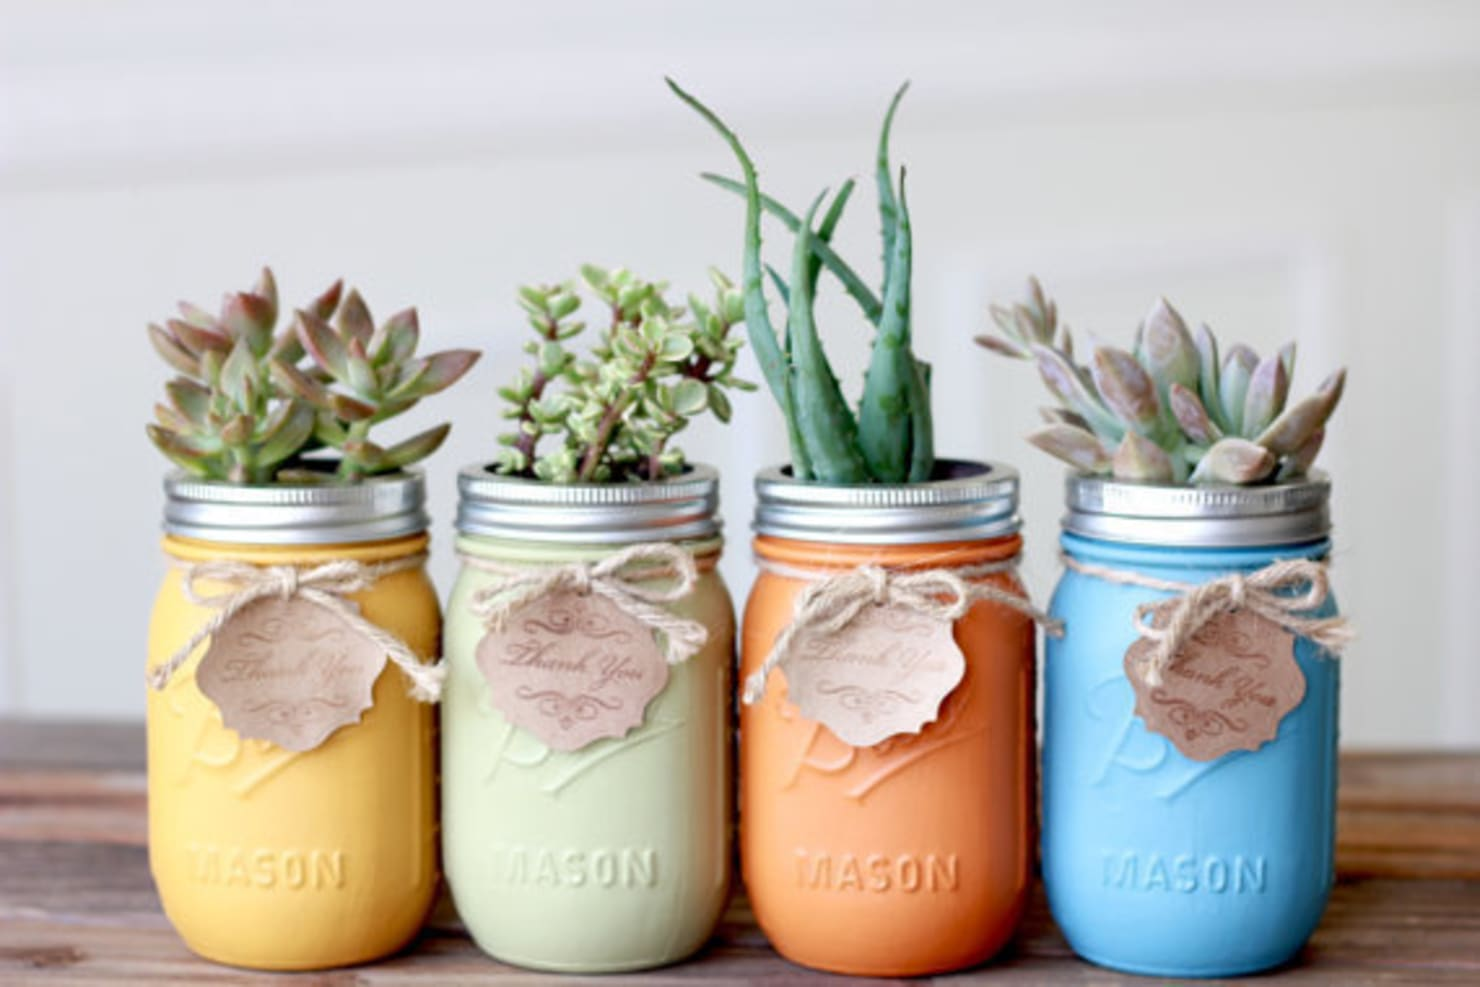 DIY ideas: 9 simple projects you're gonna want to try!